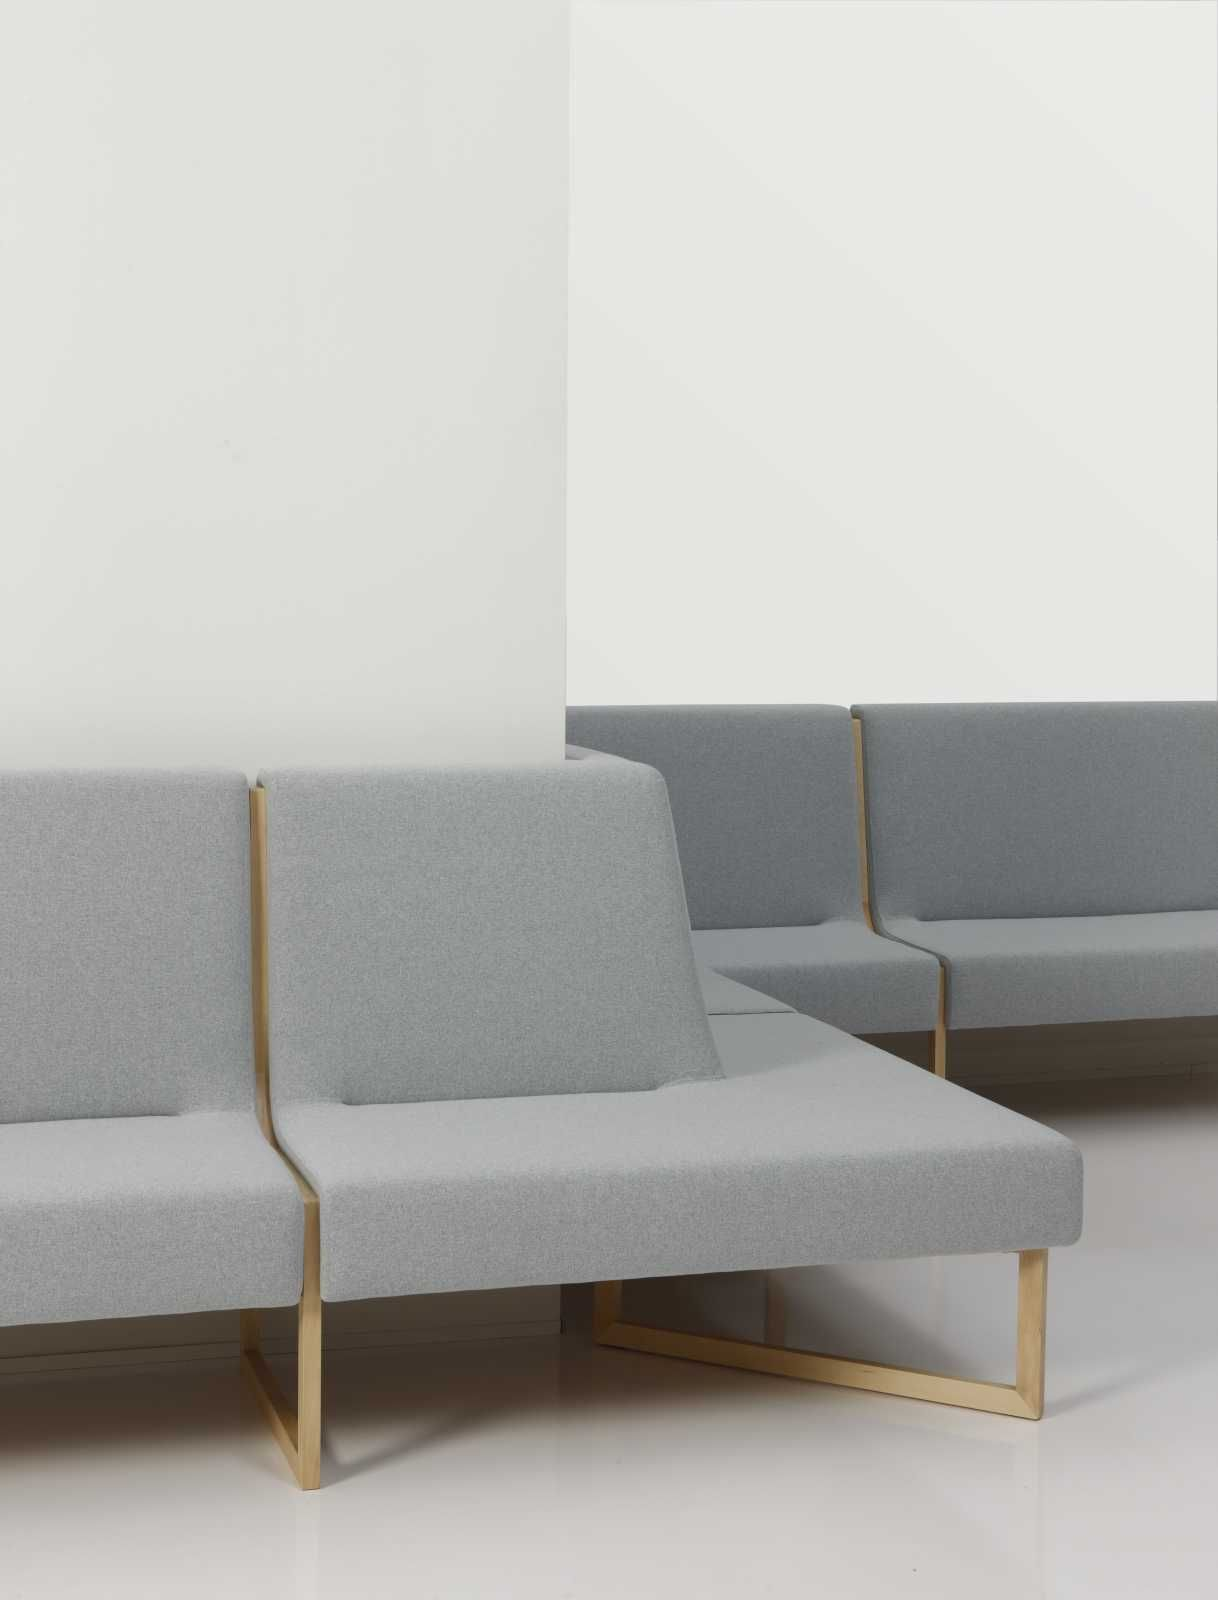 Freedom Furniture Lounges Pin By Carissa Walker On Home Modular Lounges Furniture